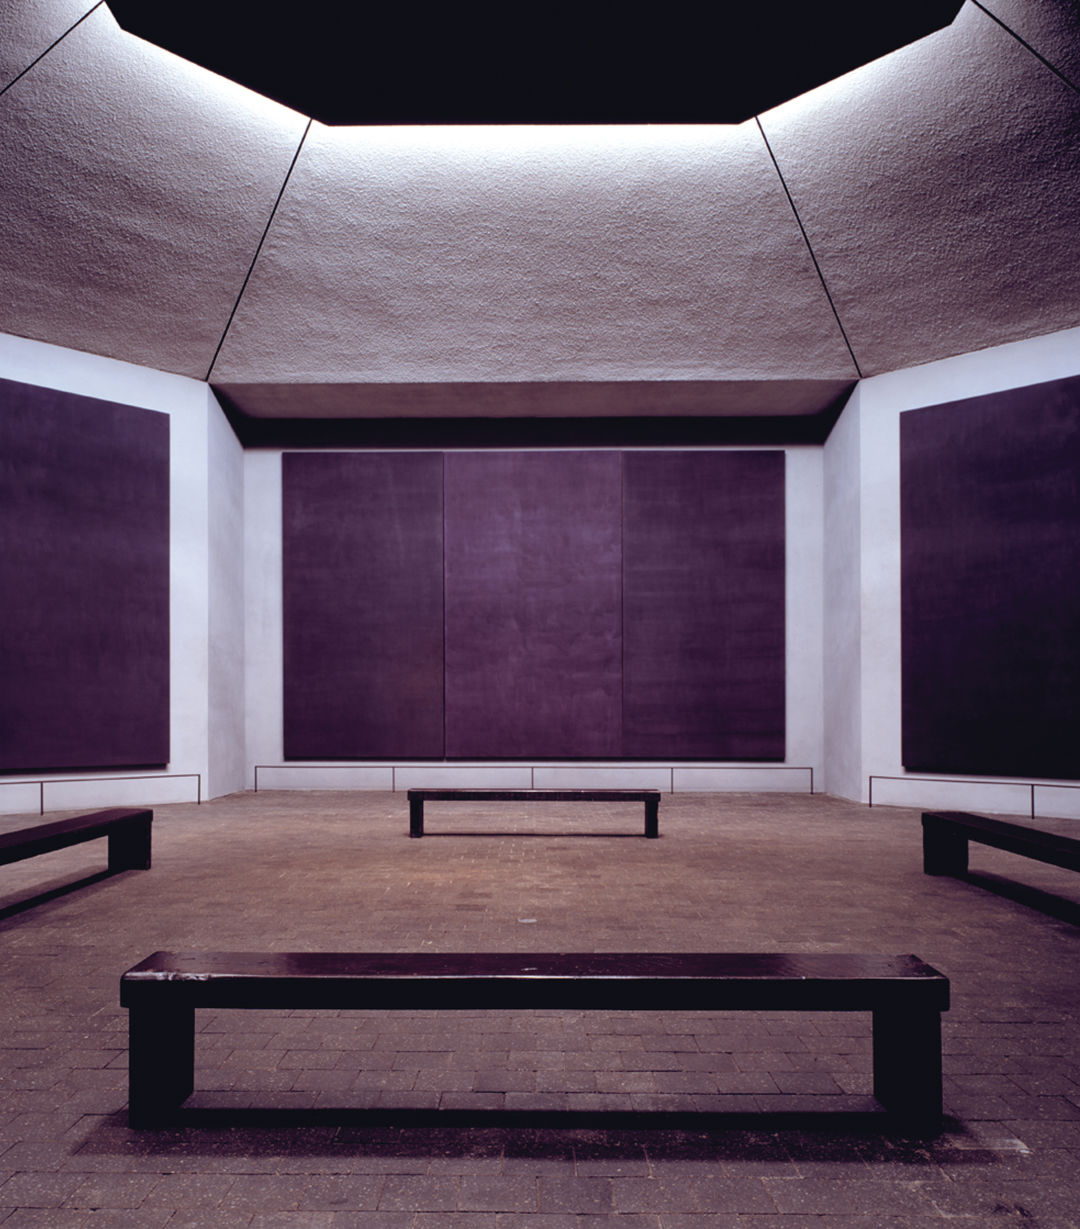 0617 ways to relax rothko chapel hqm2fc